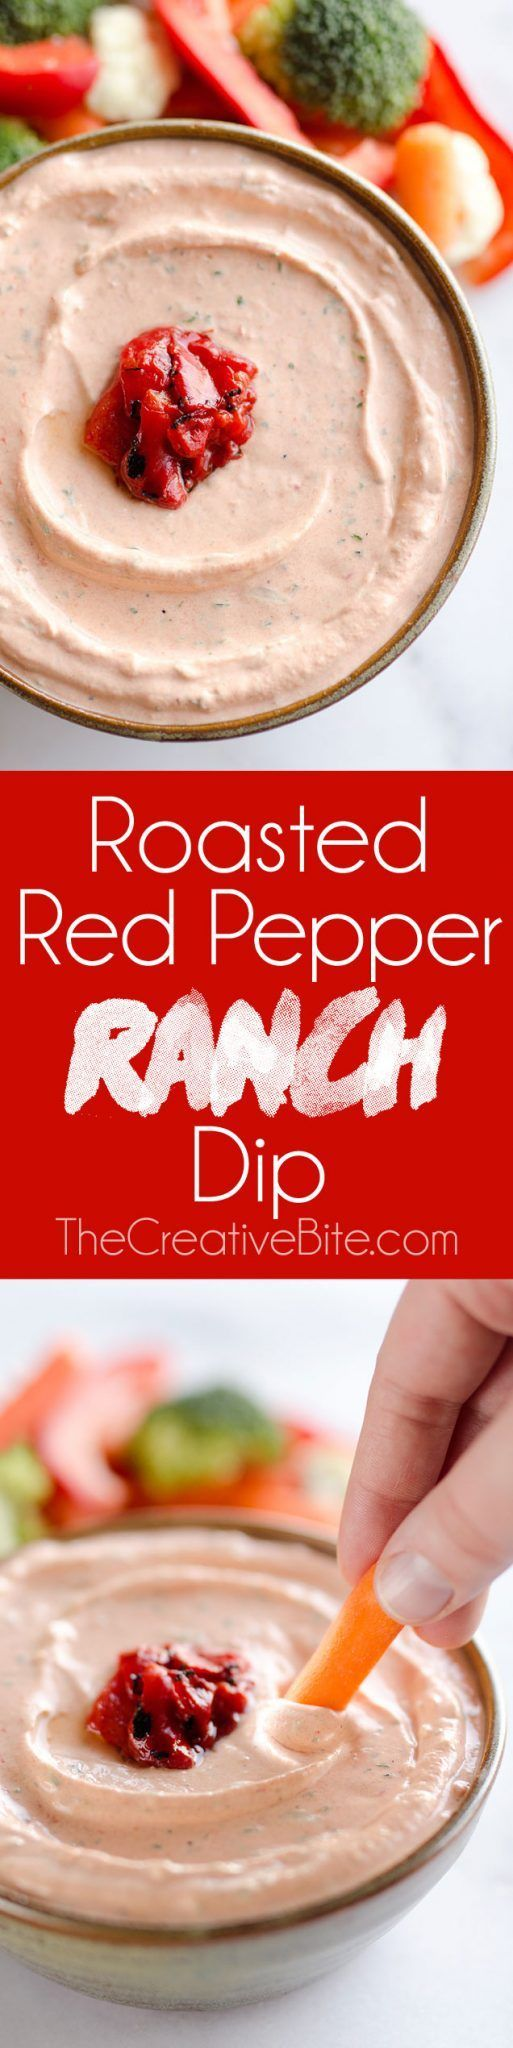 Easy red pepper appetizer recipes